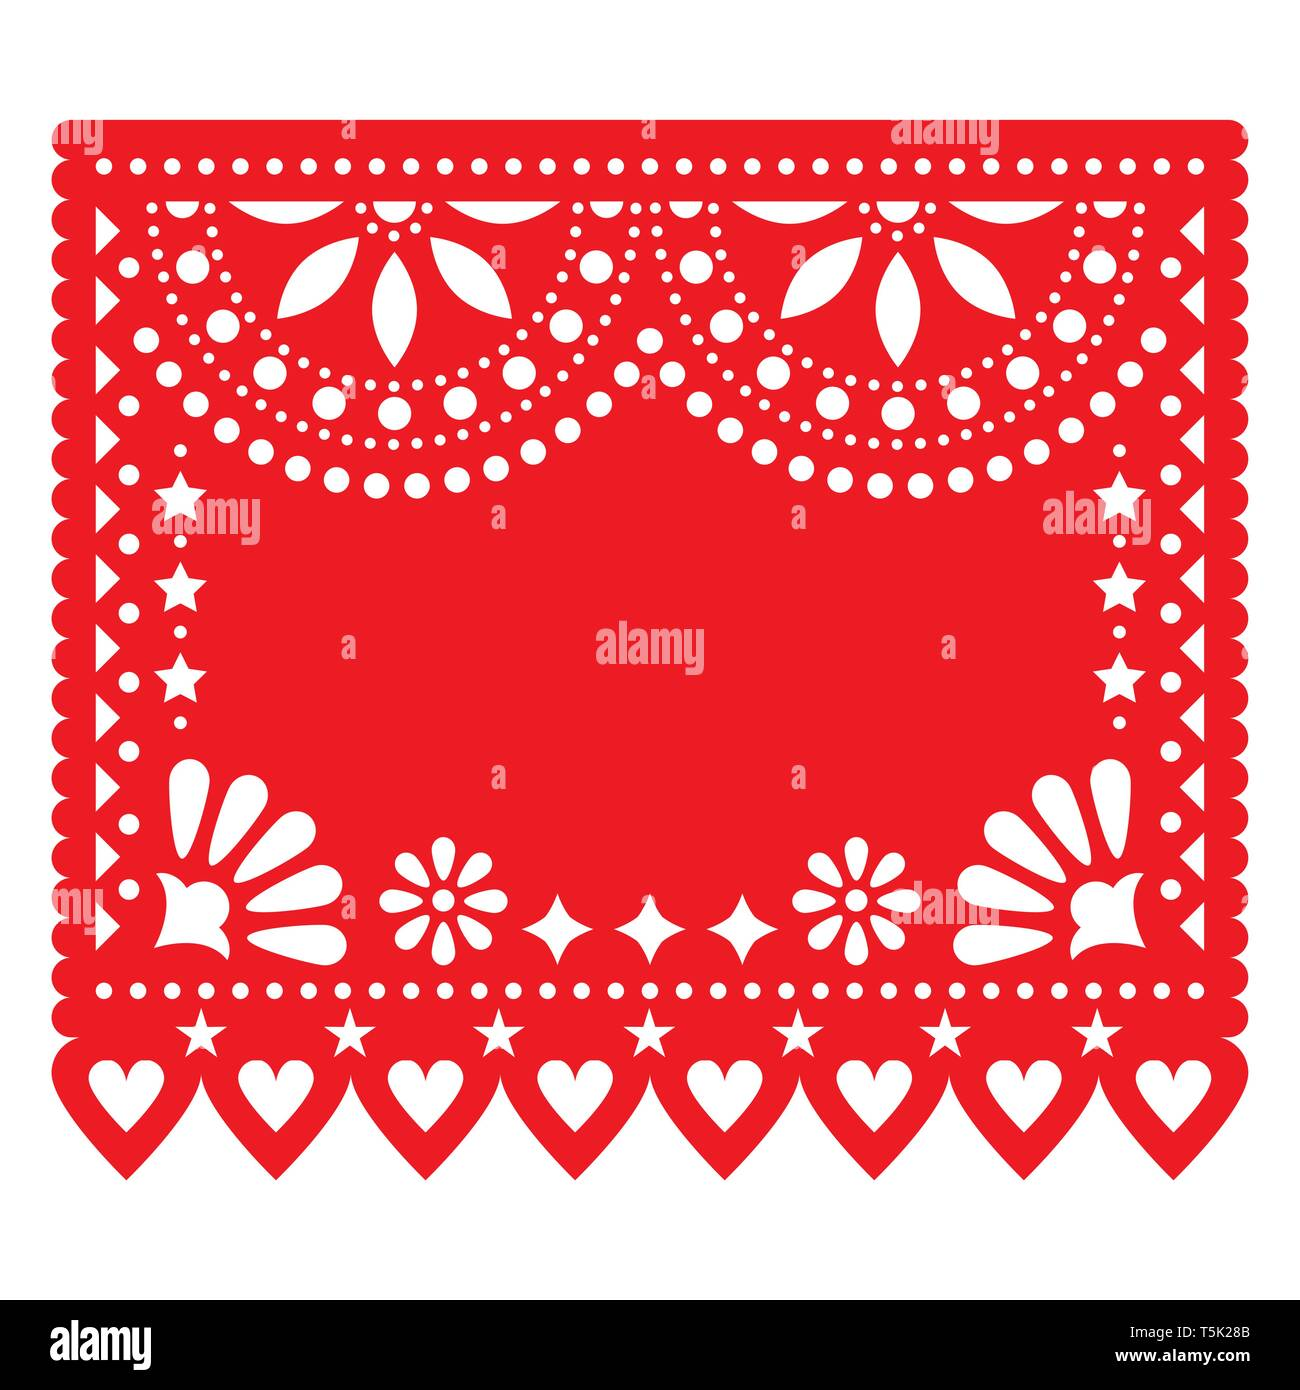 Papel Picado Red Vector Floral Template Design With Abstract